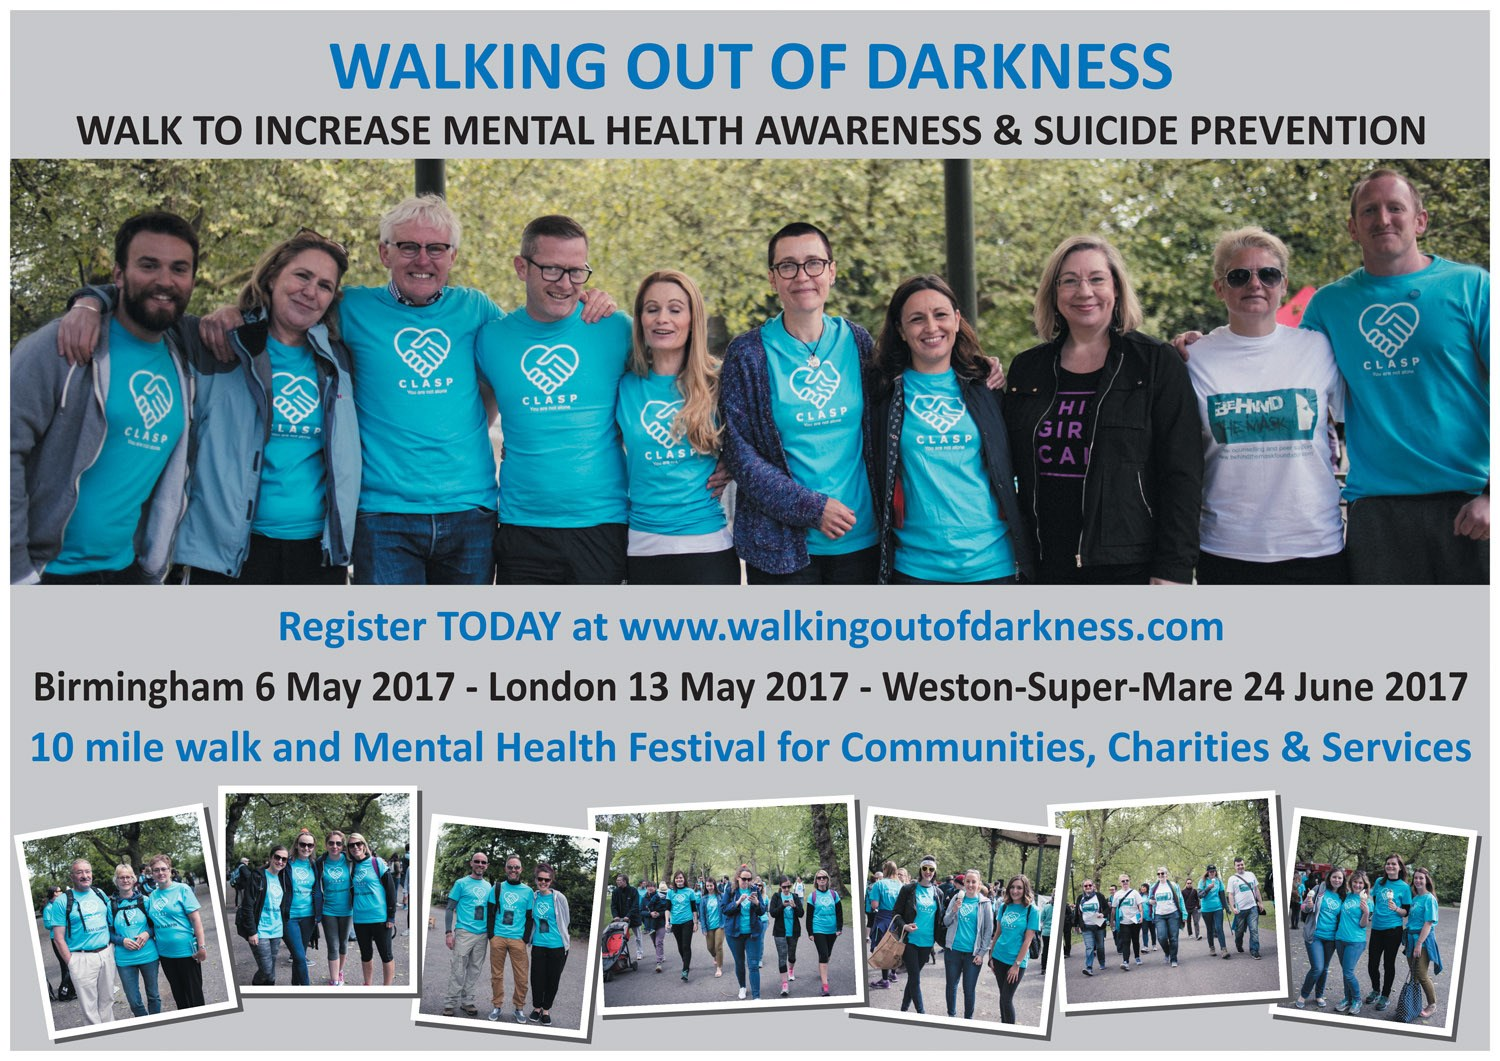 Boost mental health awareness and suicide prevention with 'Walking Out of Darkness'